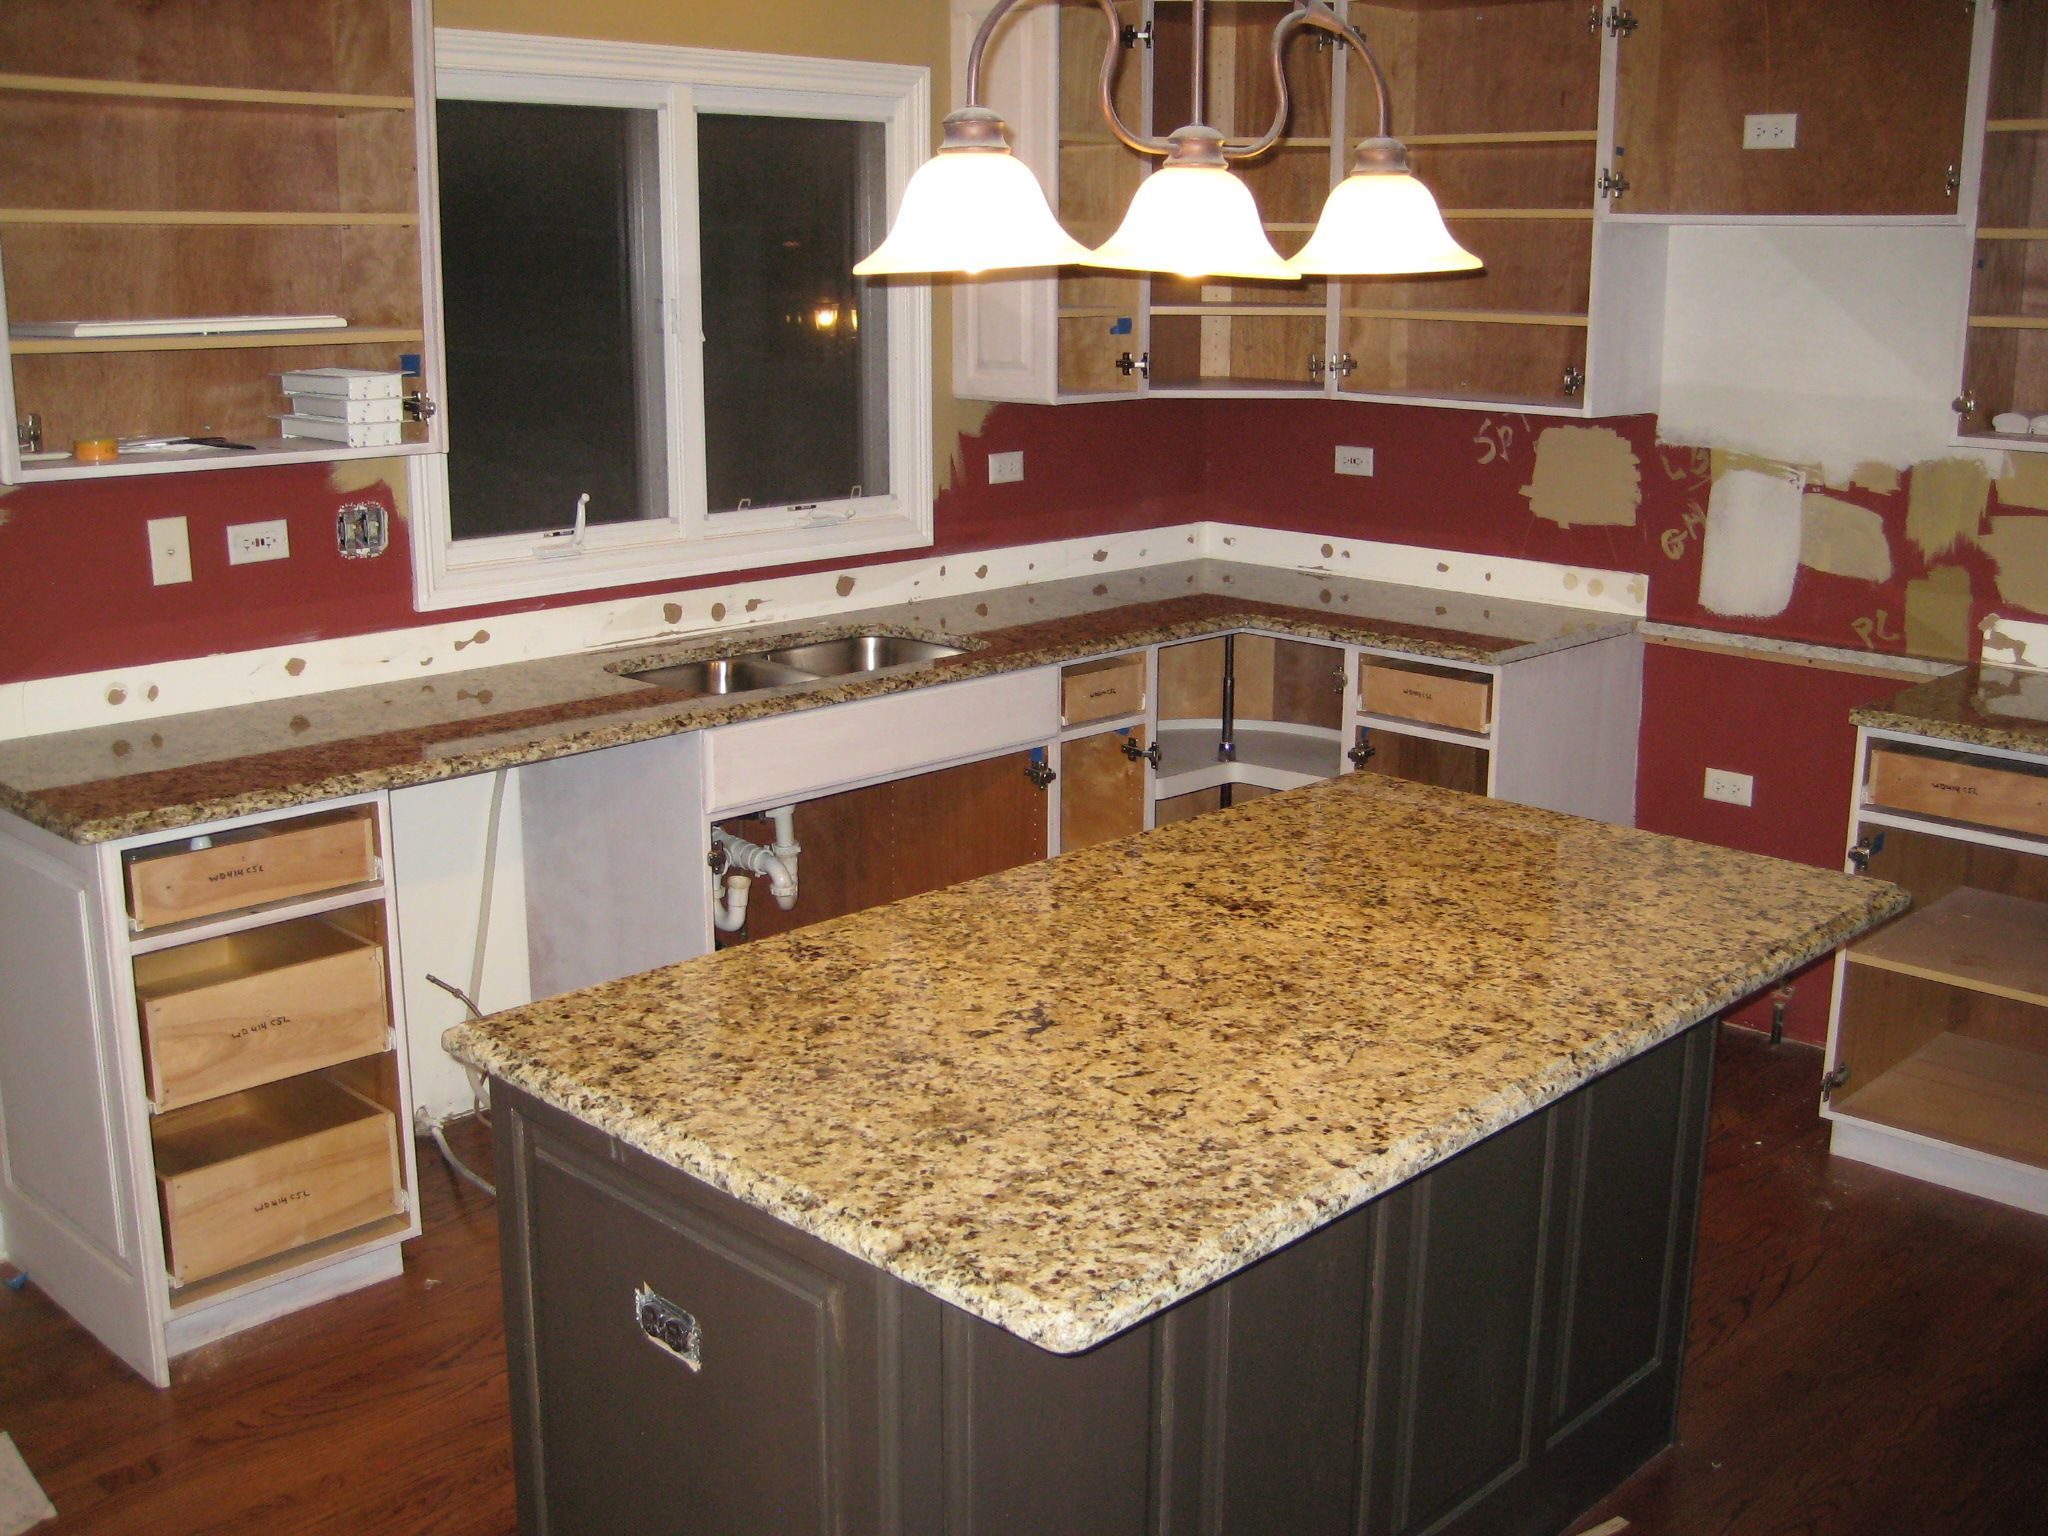 Granite Color Giallo Napoli 36 00 Per Sf Installed